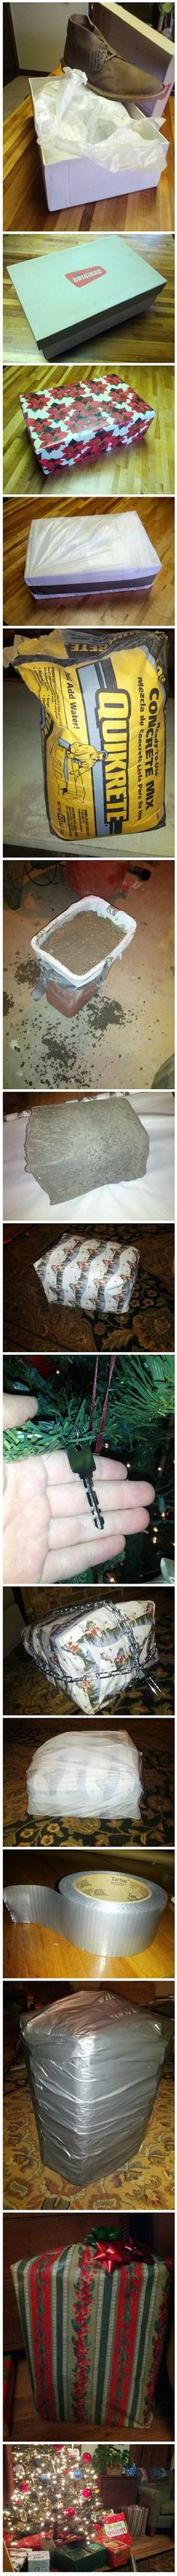 How To Properly Wrap A Present I am going to try this without the cement!!!!!!!   Lol